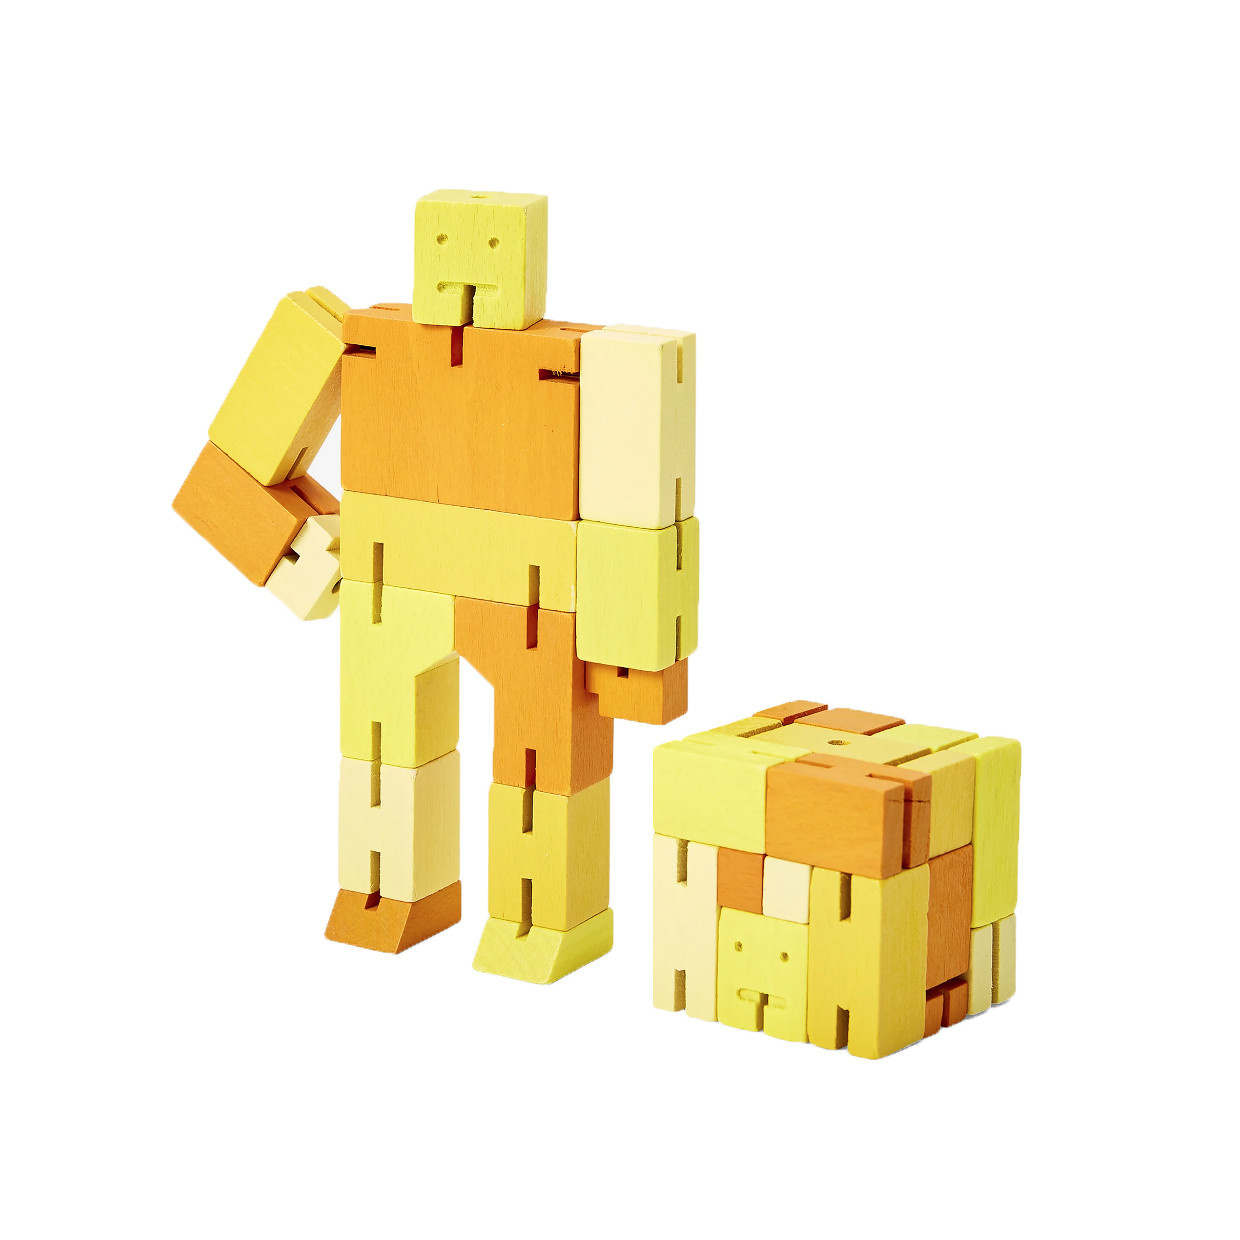 Areaware Cubebot Capsule Small - Yellow Multi